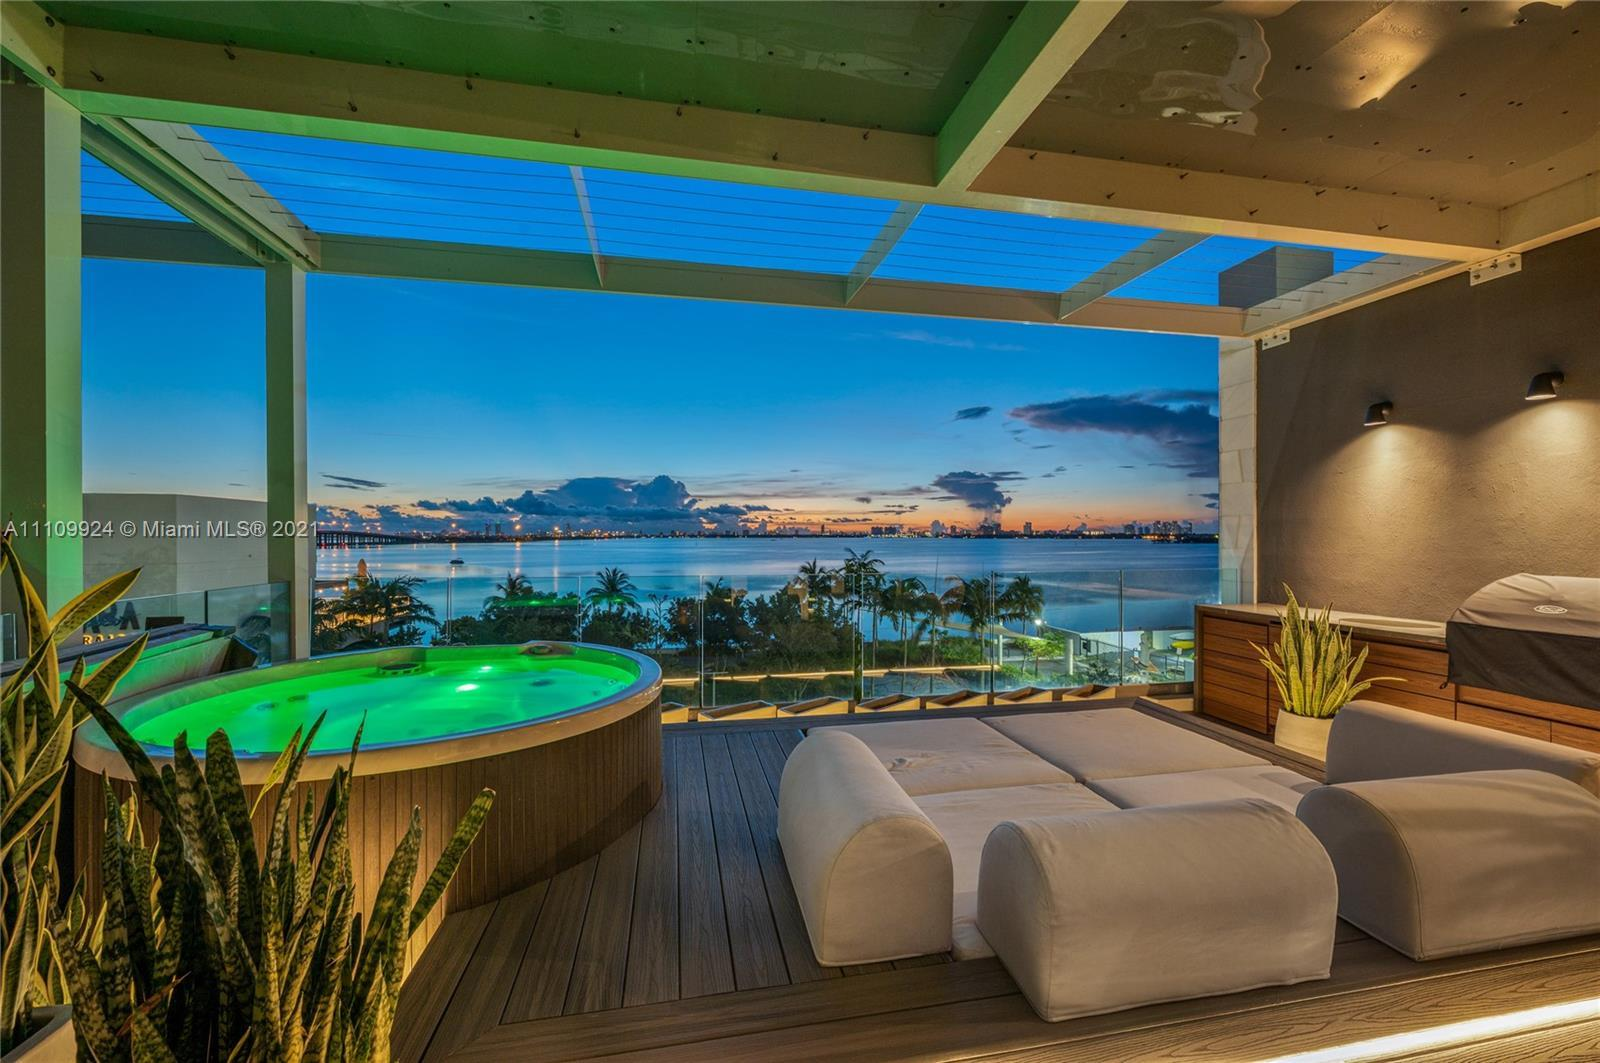 Live in this spectacular, expansive Bay Home that blends two luxury units into one.  Enjoy the feel